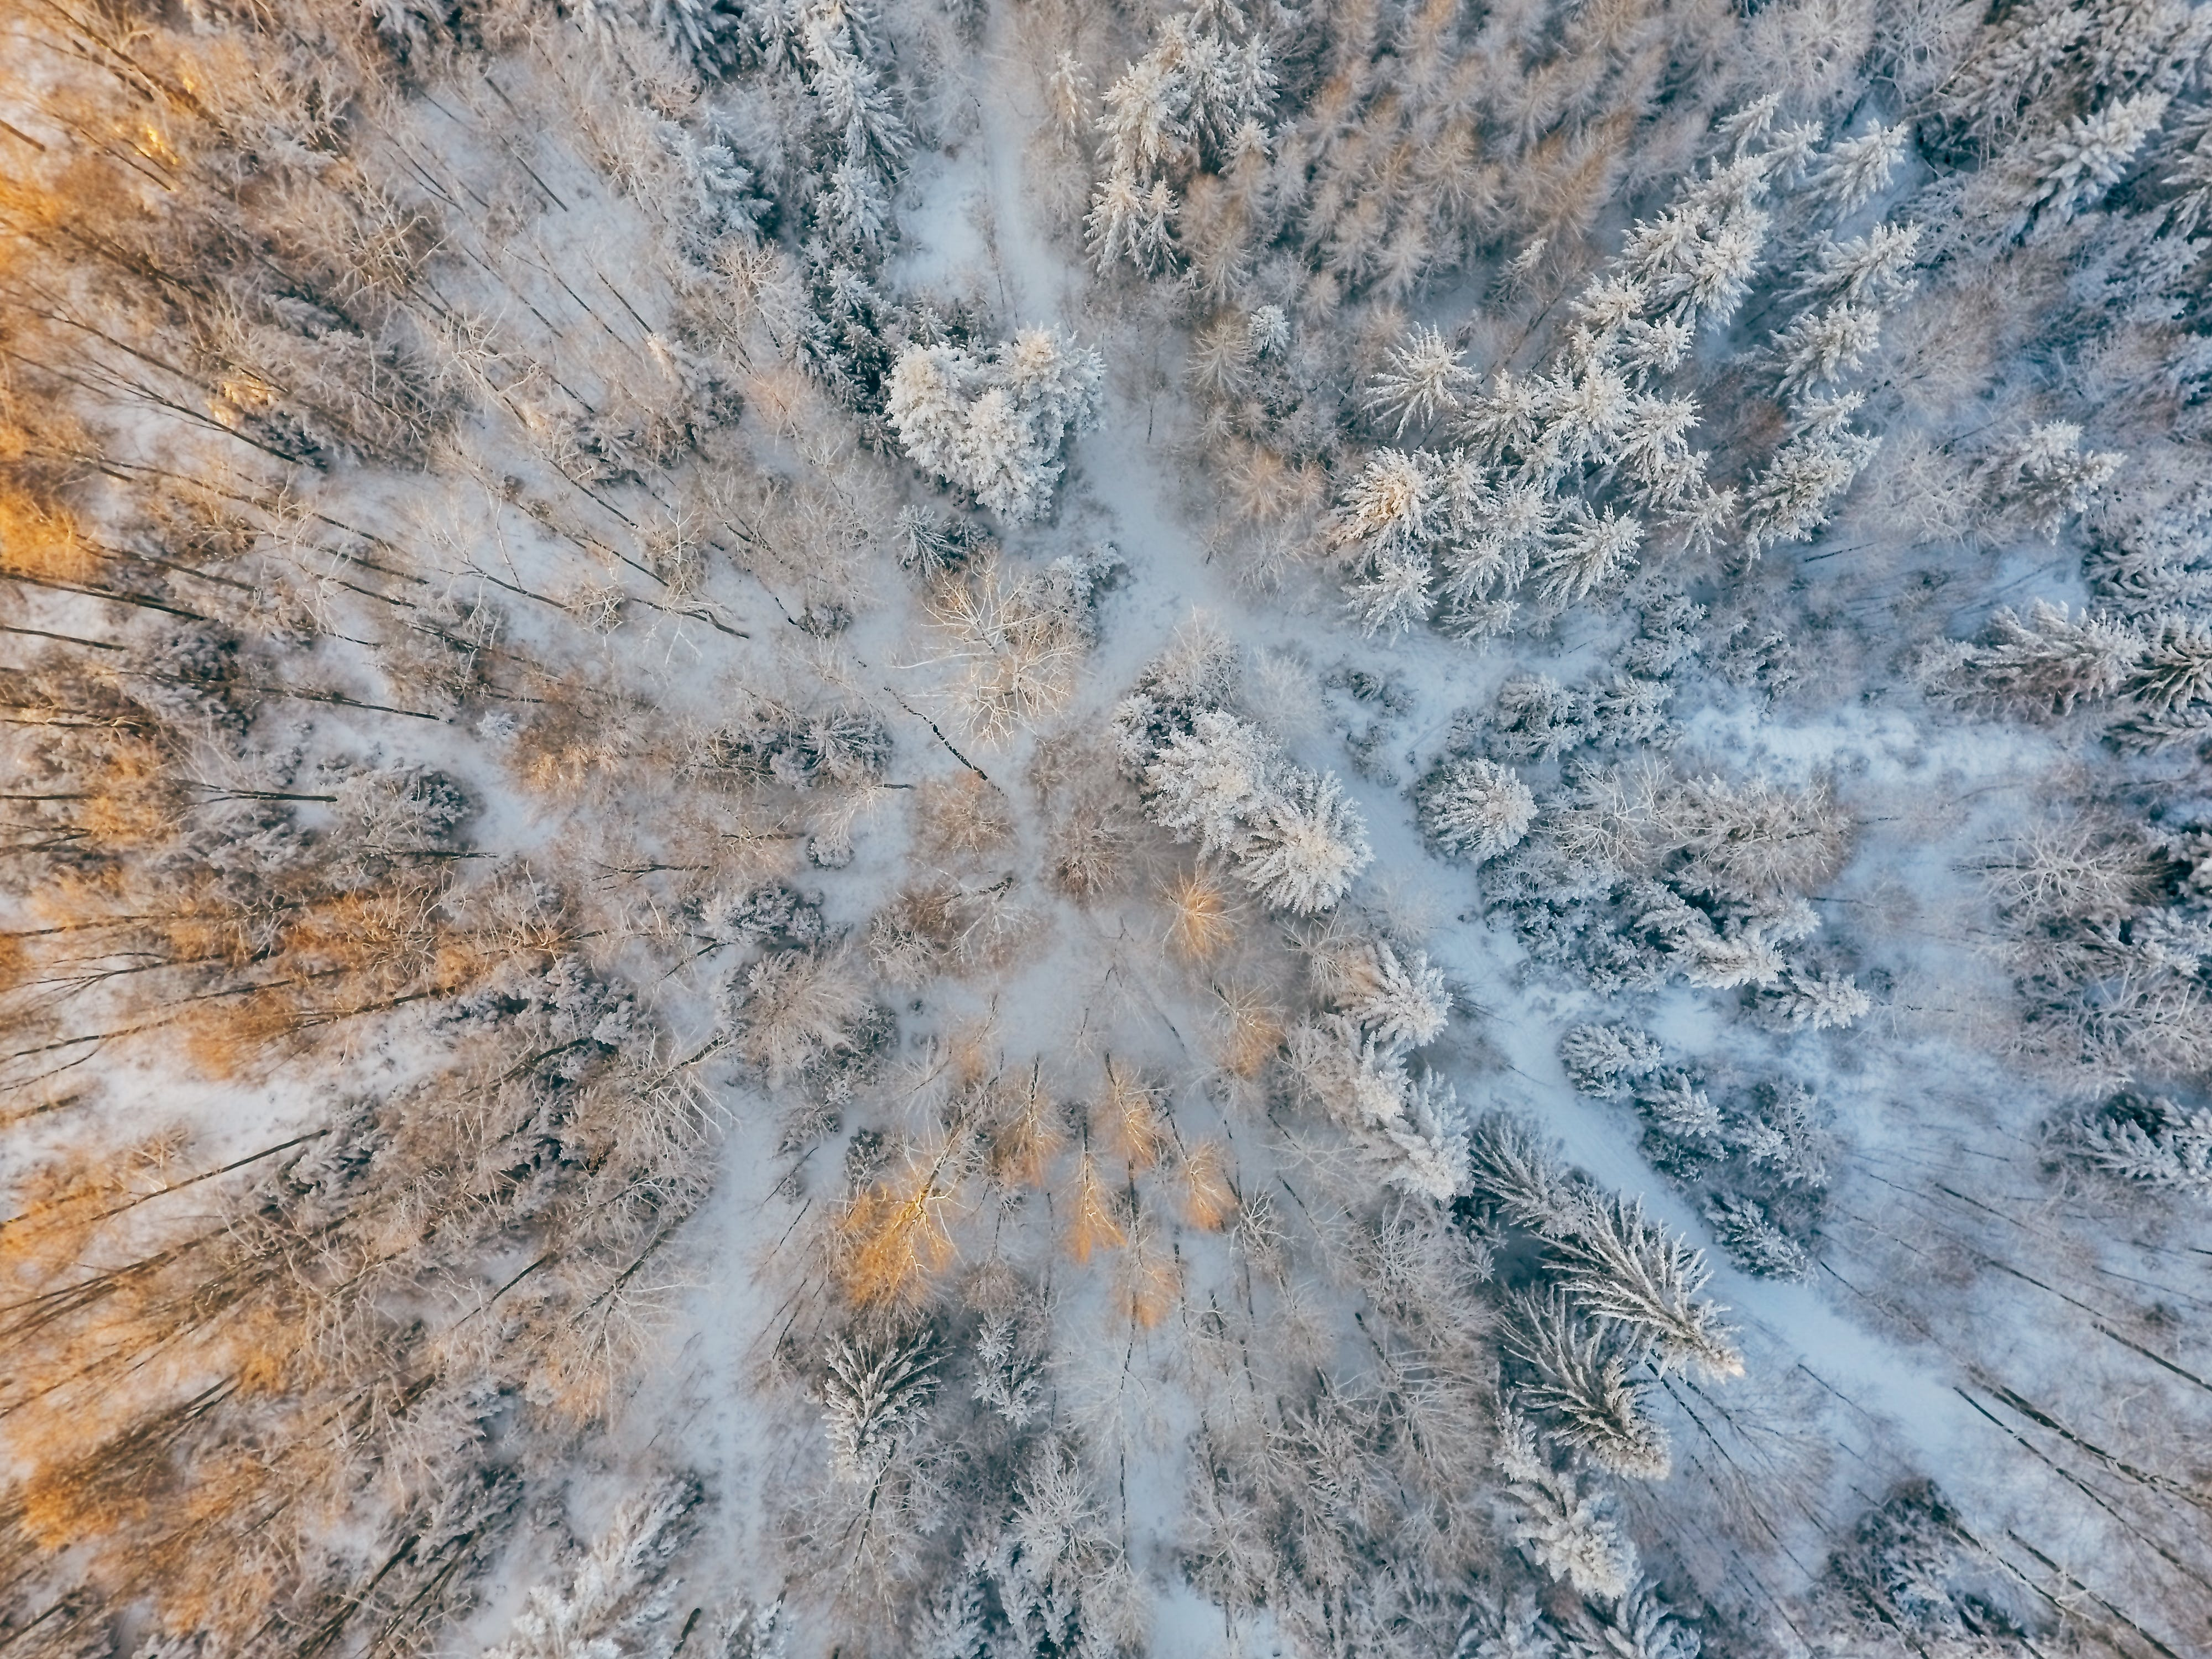 Aerial Photography of Trees